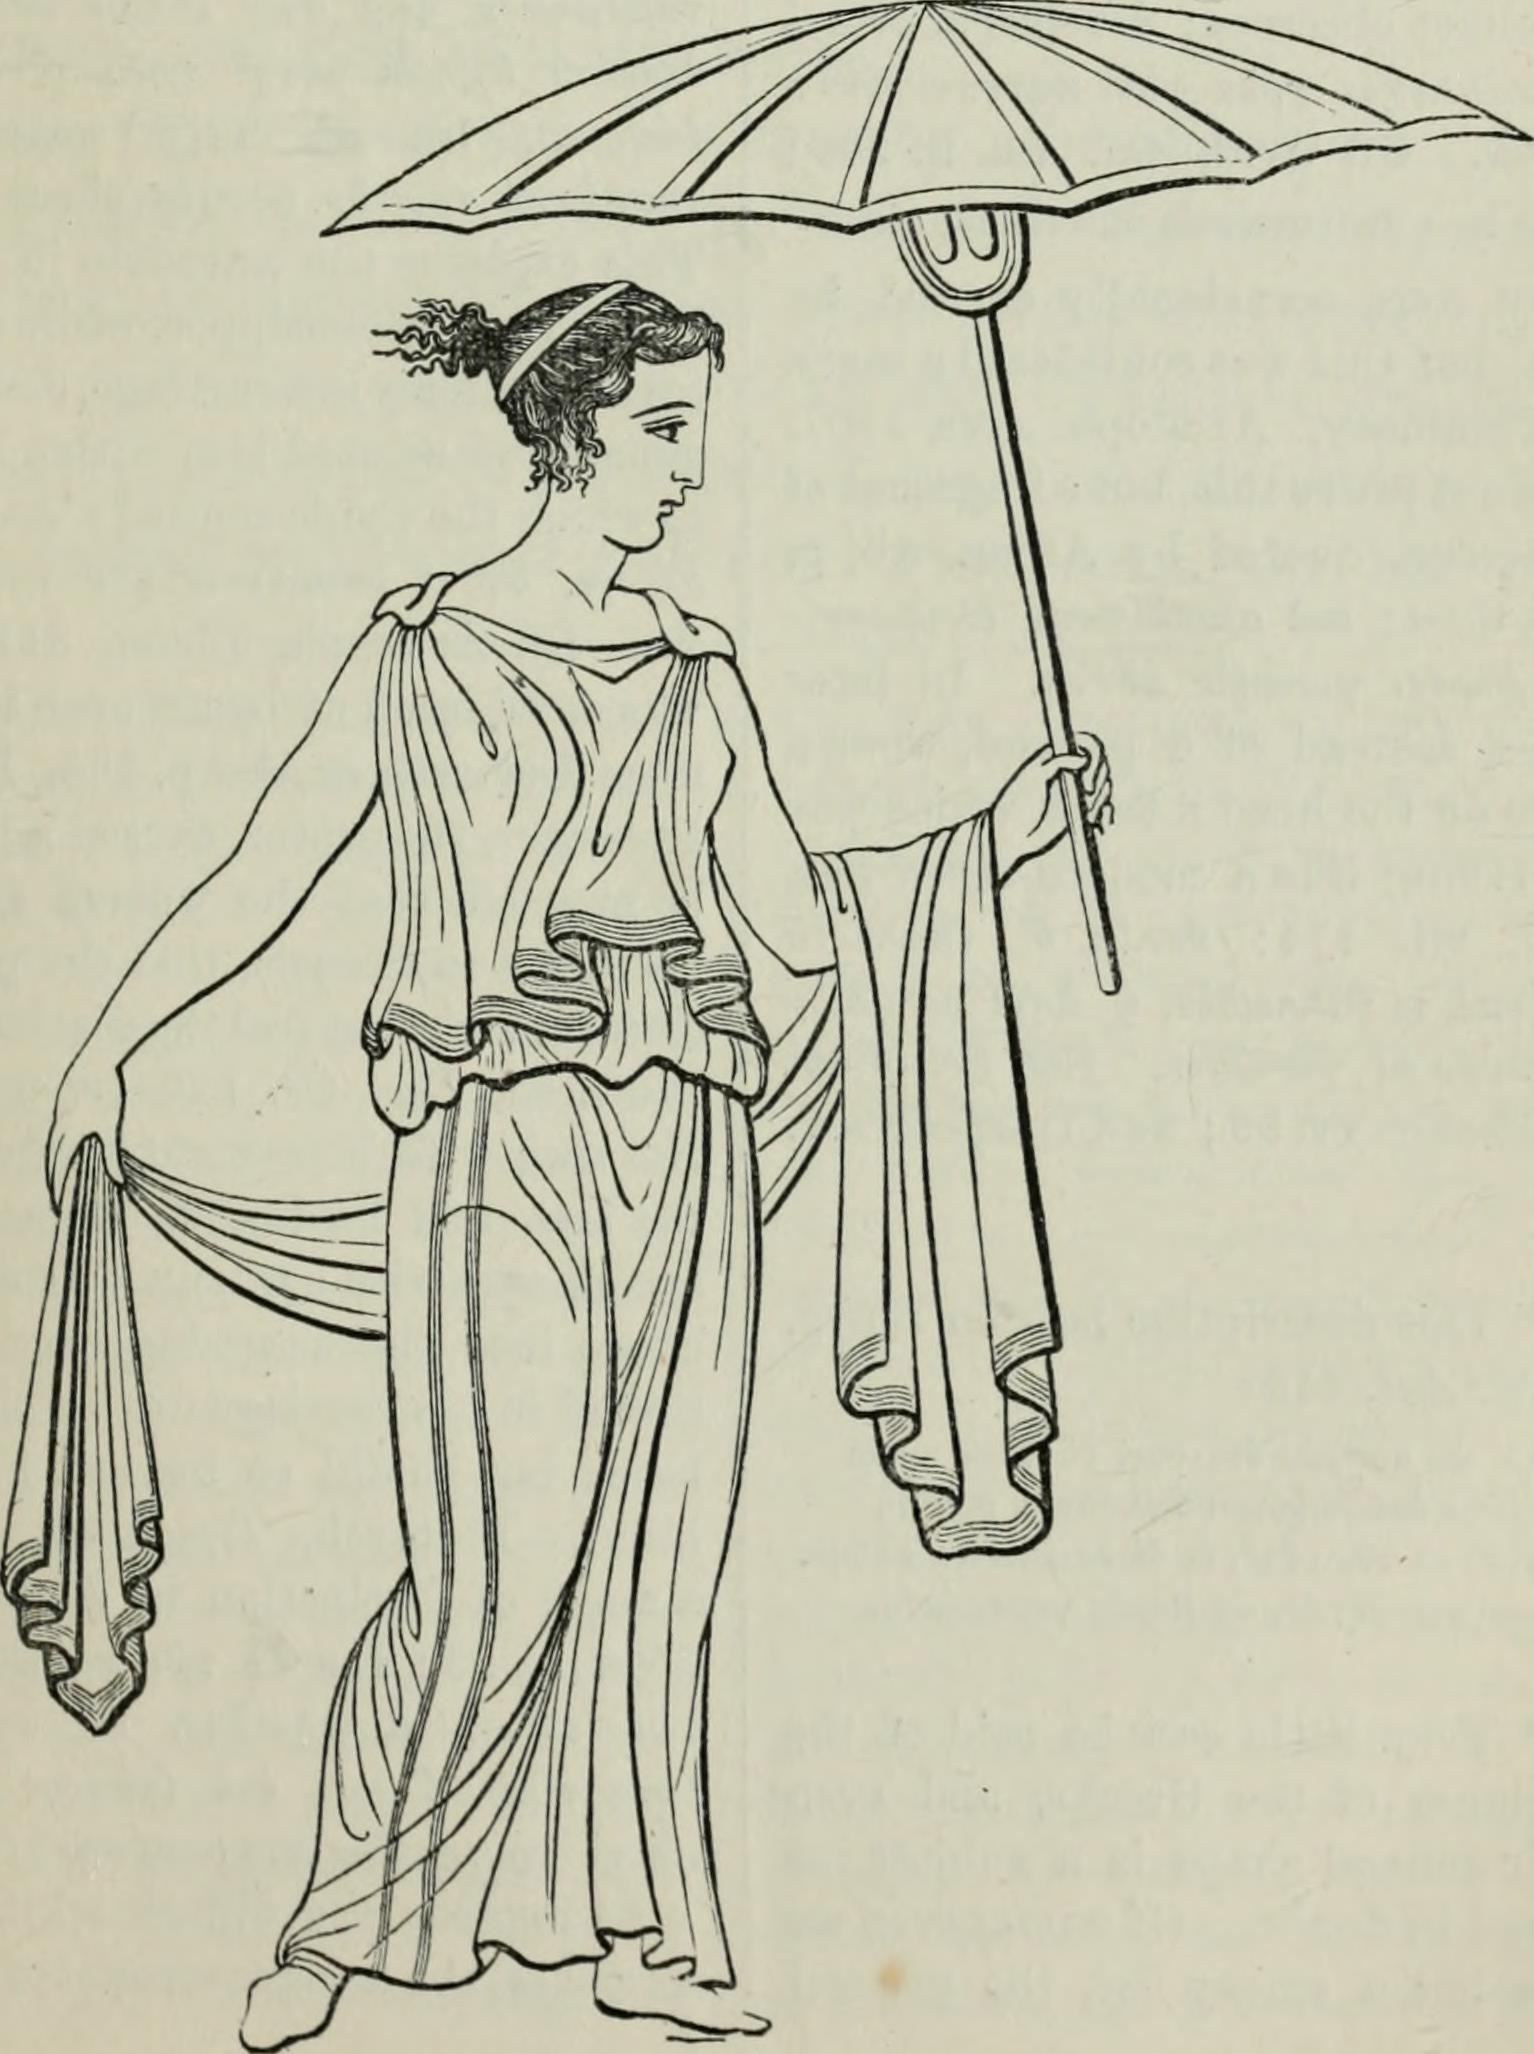 Illustration of an Ancient Greek woman with an umbrella